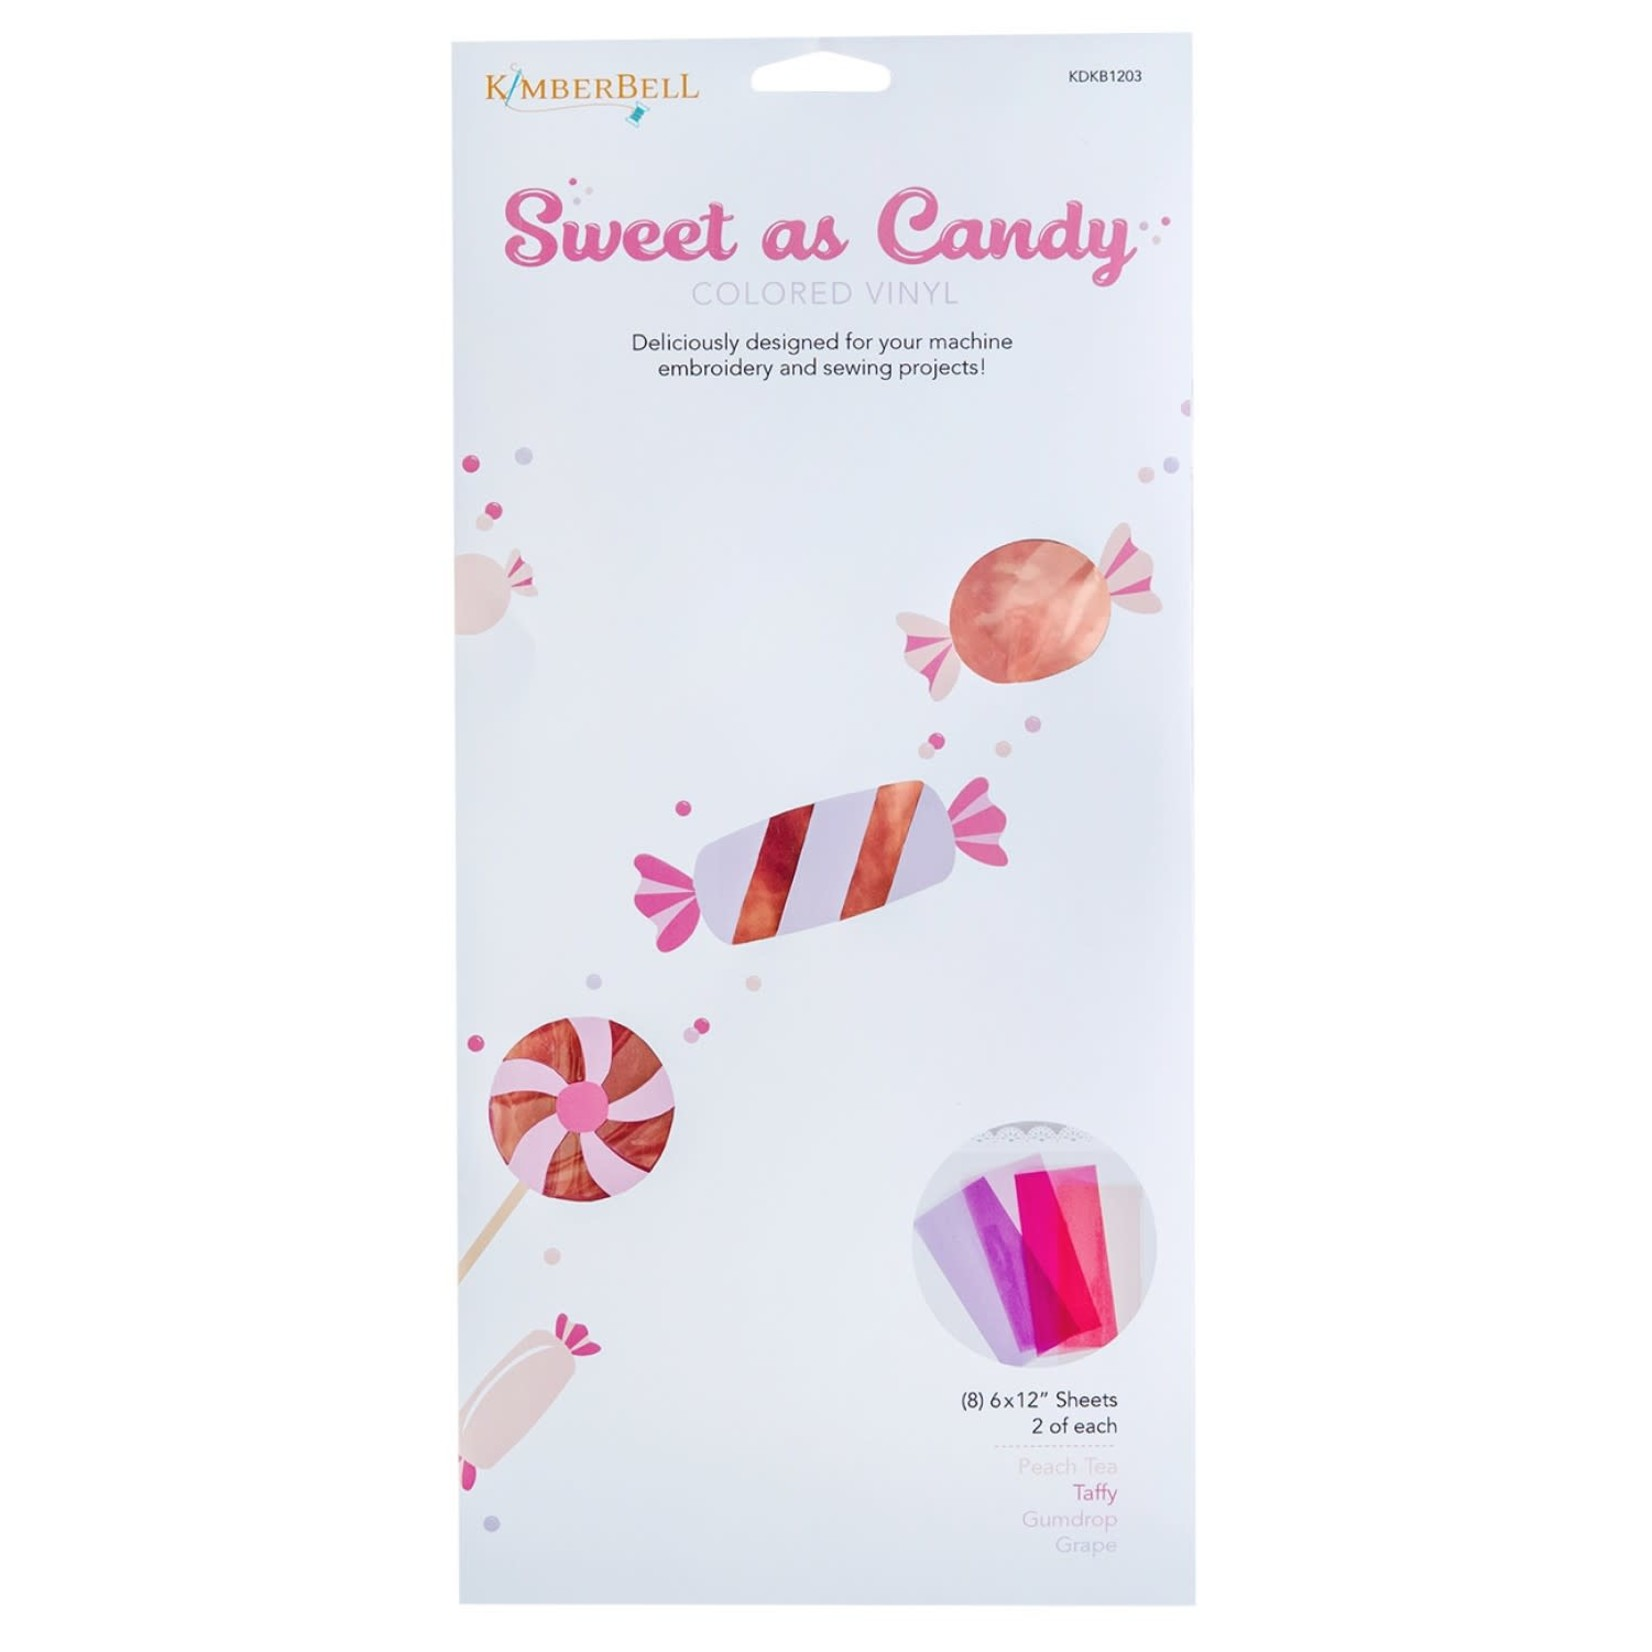 KIMBERBELL DESIGNS Sweet as Candy Colored Vinyls:  Pinks